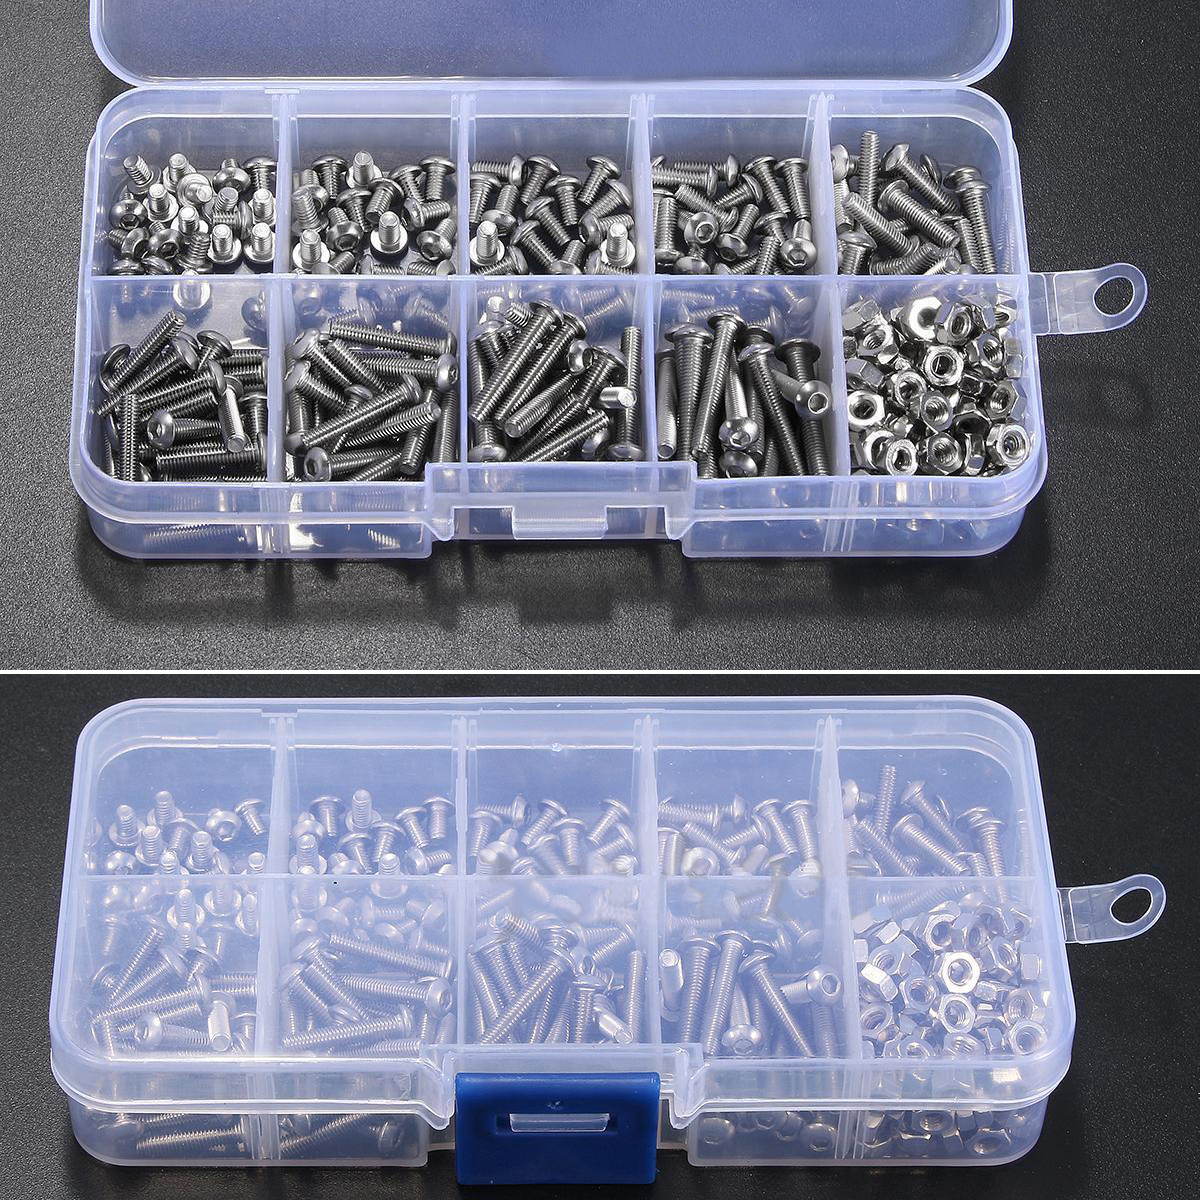 340pcs Assorted M3 A2 Screws Stainless Steel Hex Screw with Hex Nuts Bolt Cap Socket Set 5/6/8/10/12/14/16/18/20mm цена